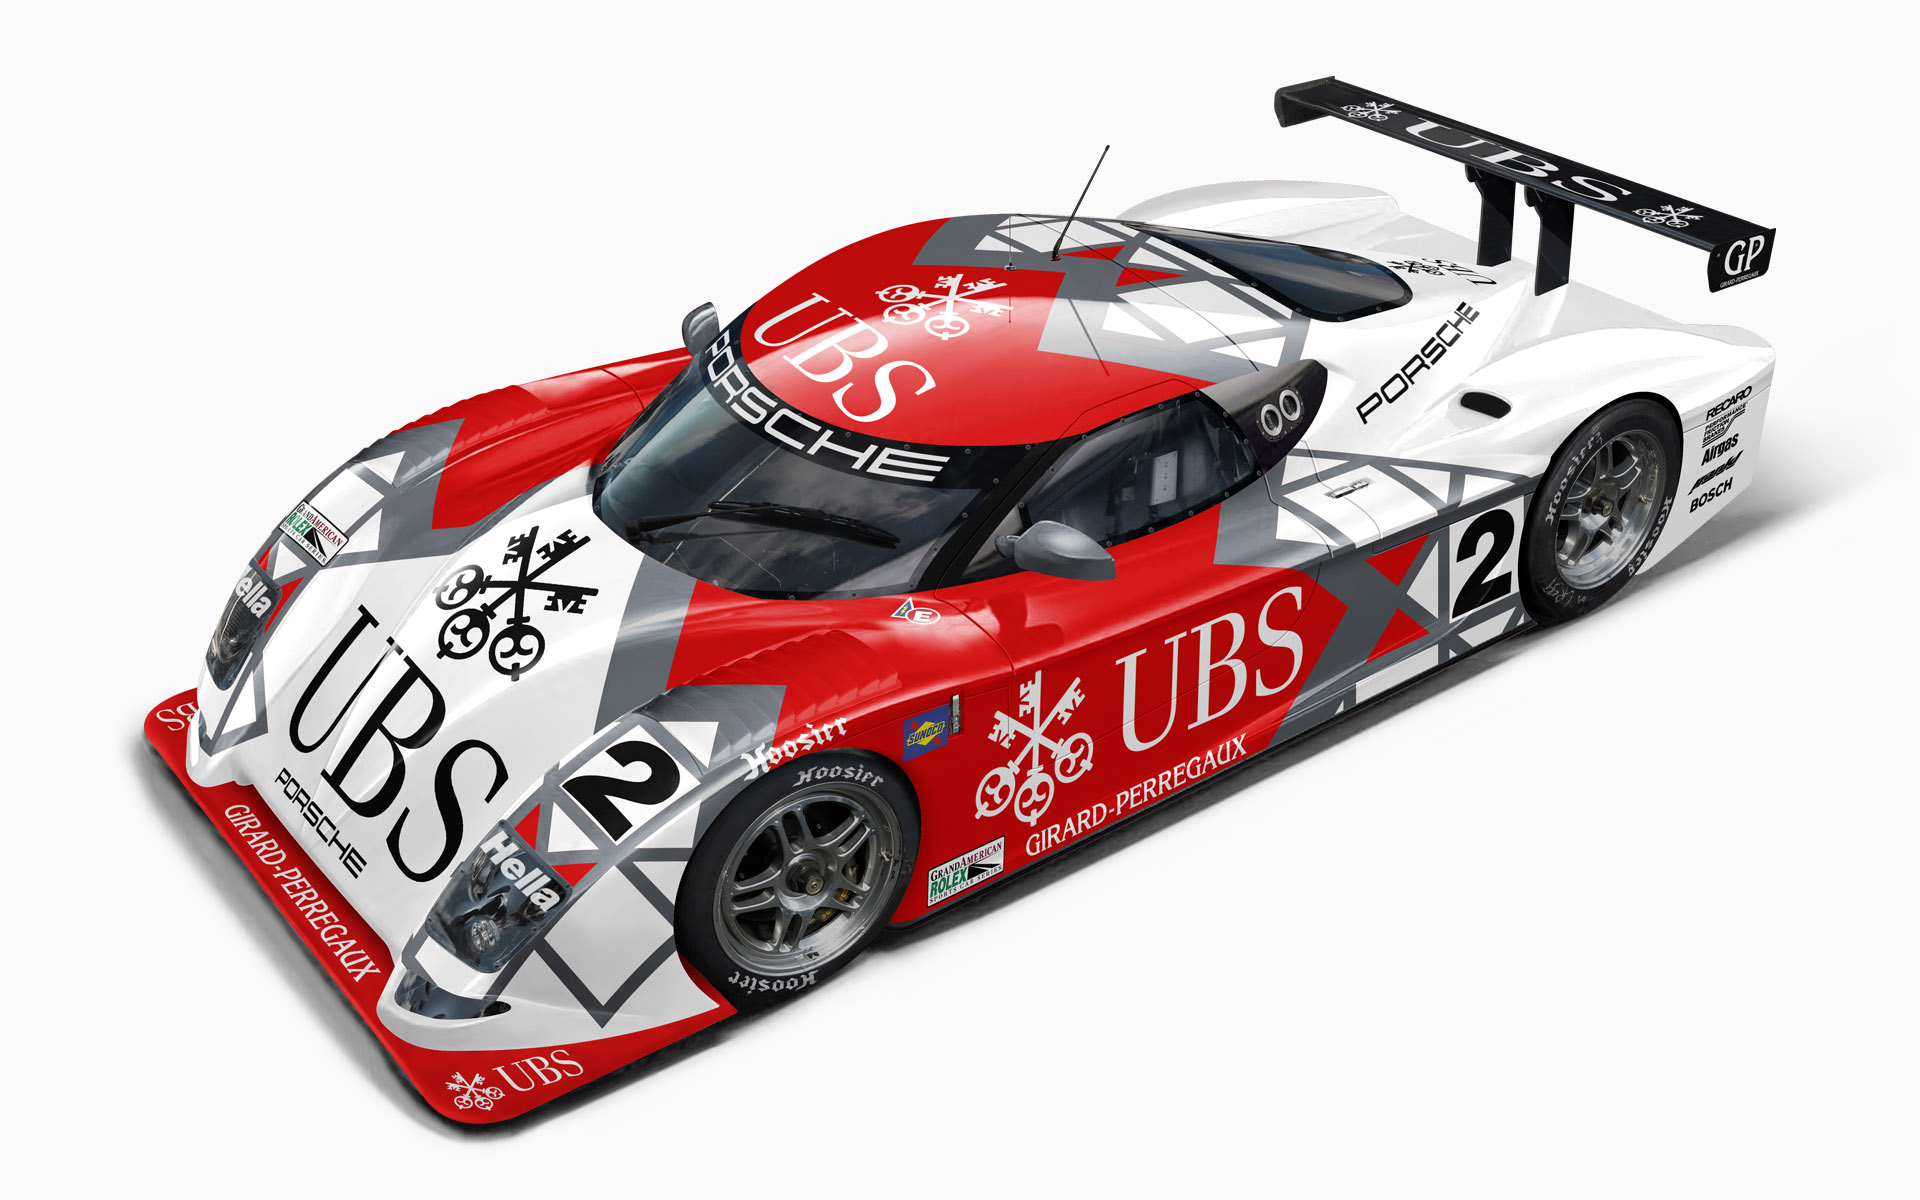 UBS Porsche Crawford Daytona Prototype Livery Visualization